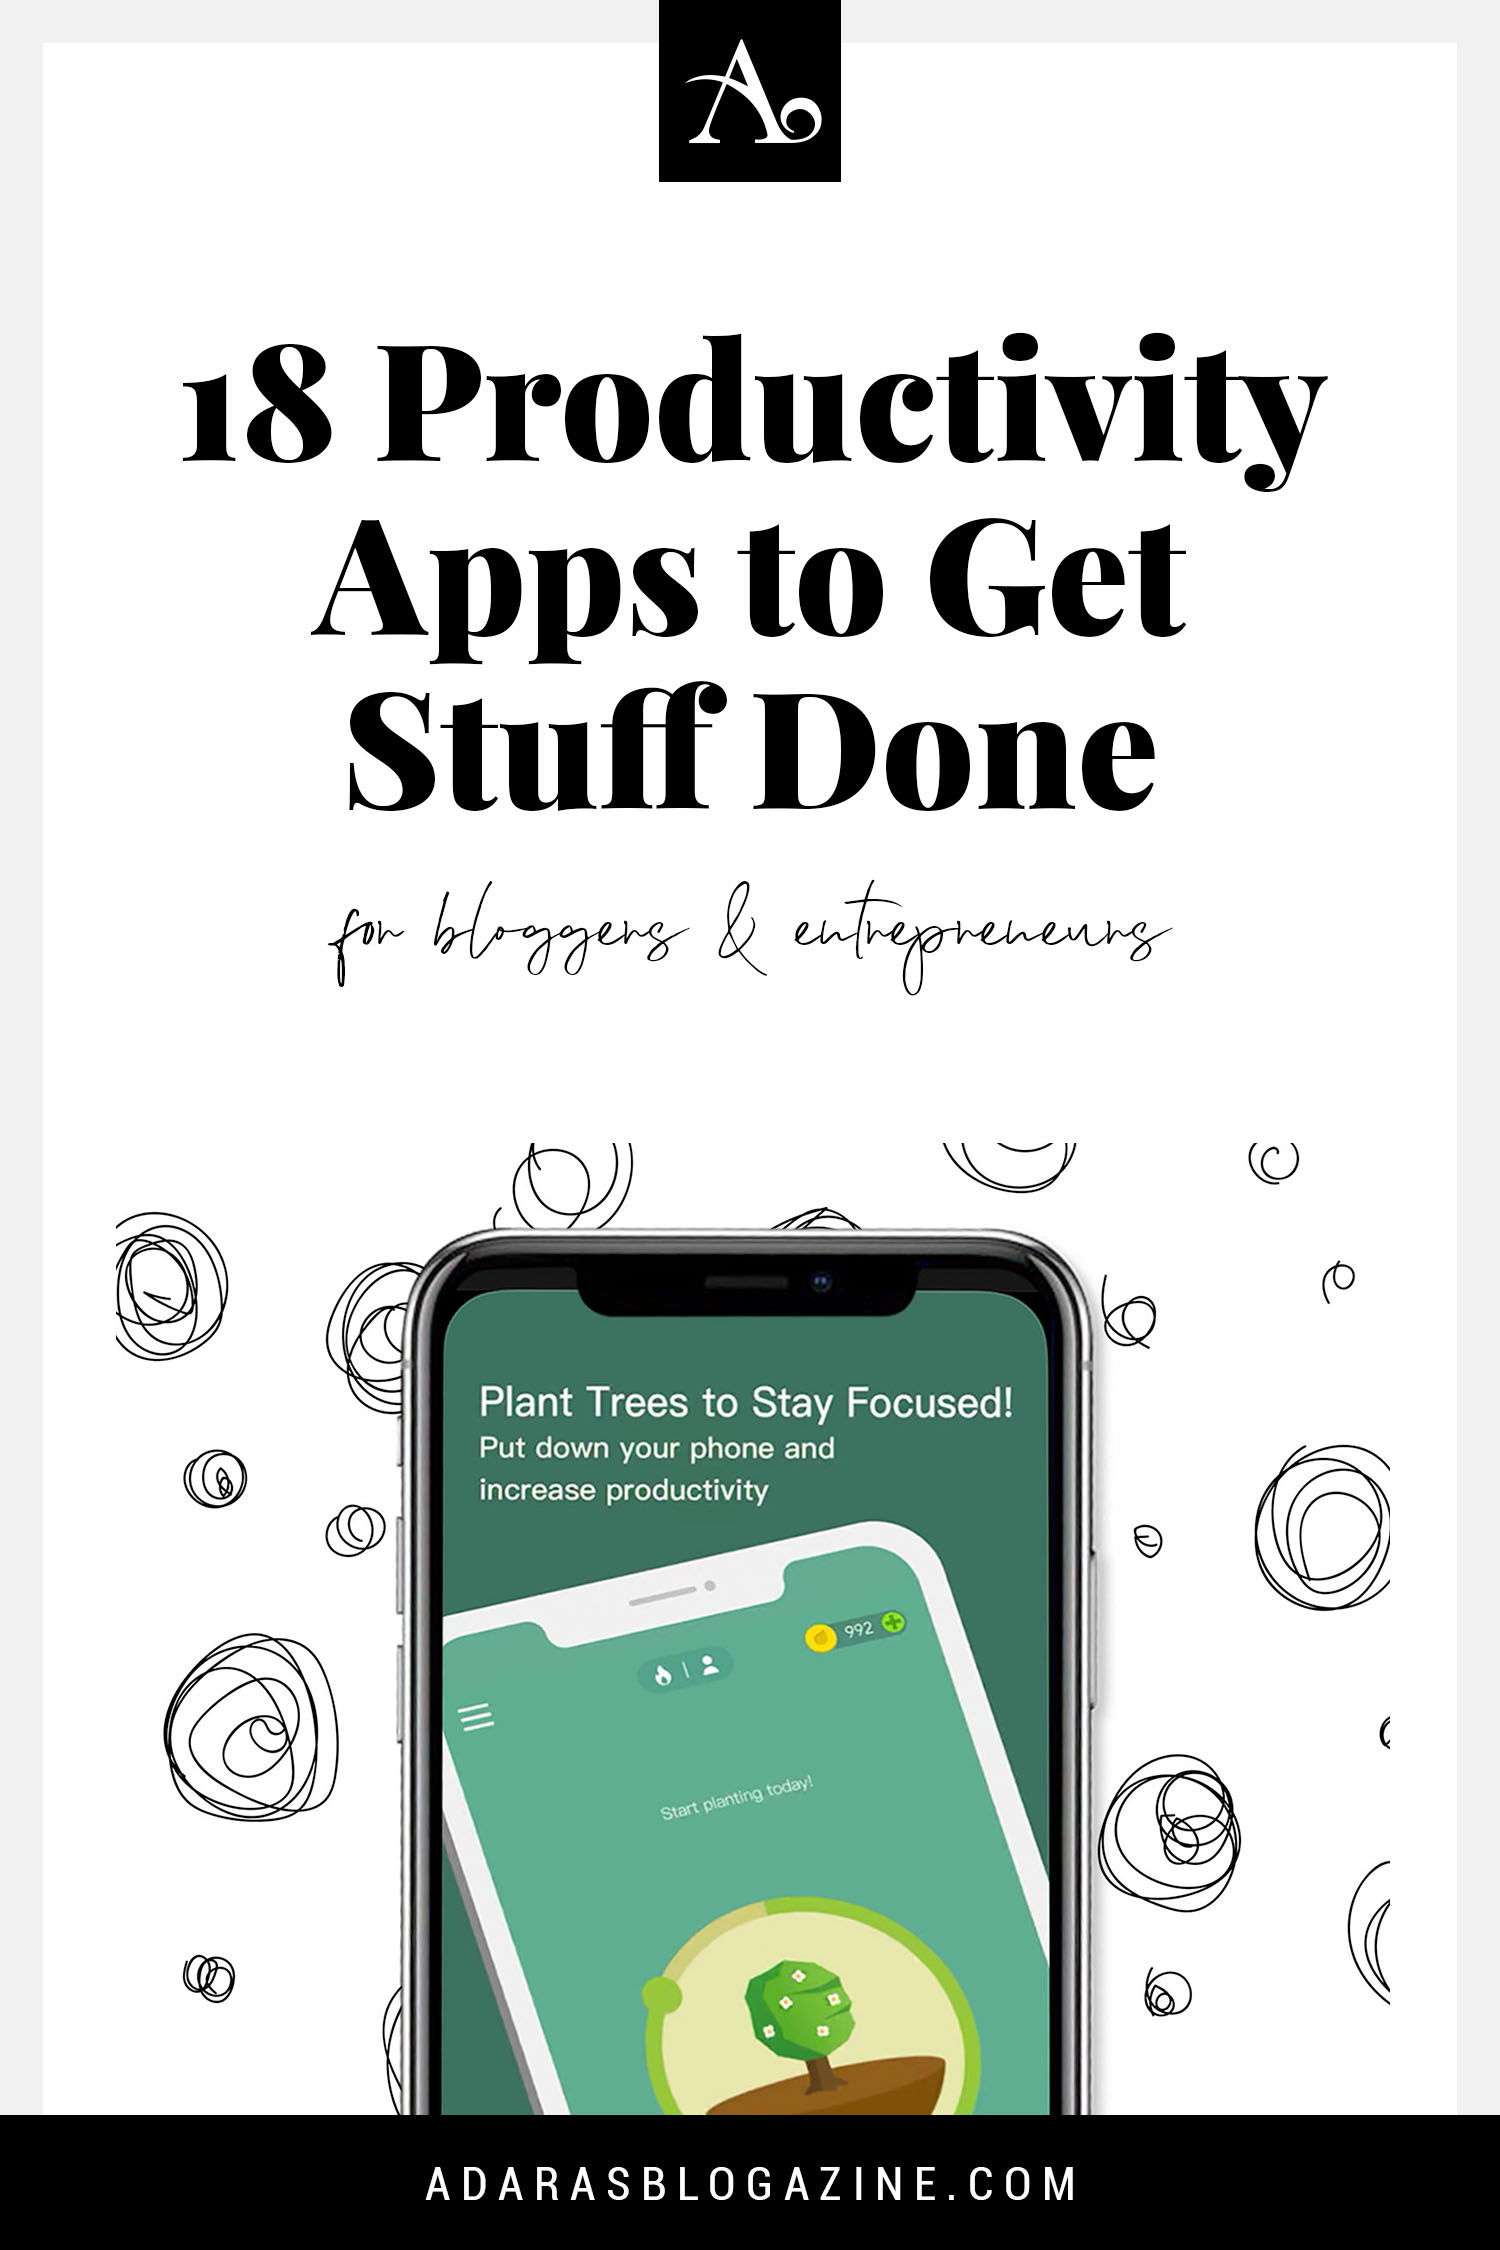 18 Productivity Apps to Get Stuff Done - For Bloggers & Entrepreneurs